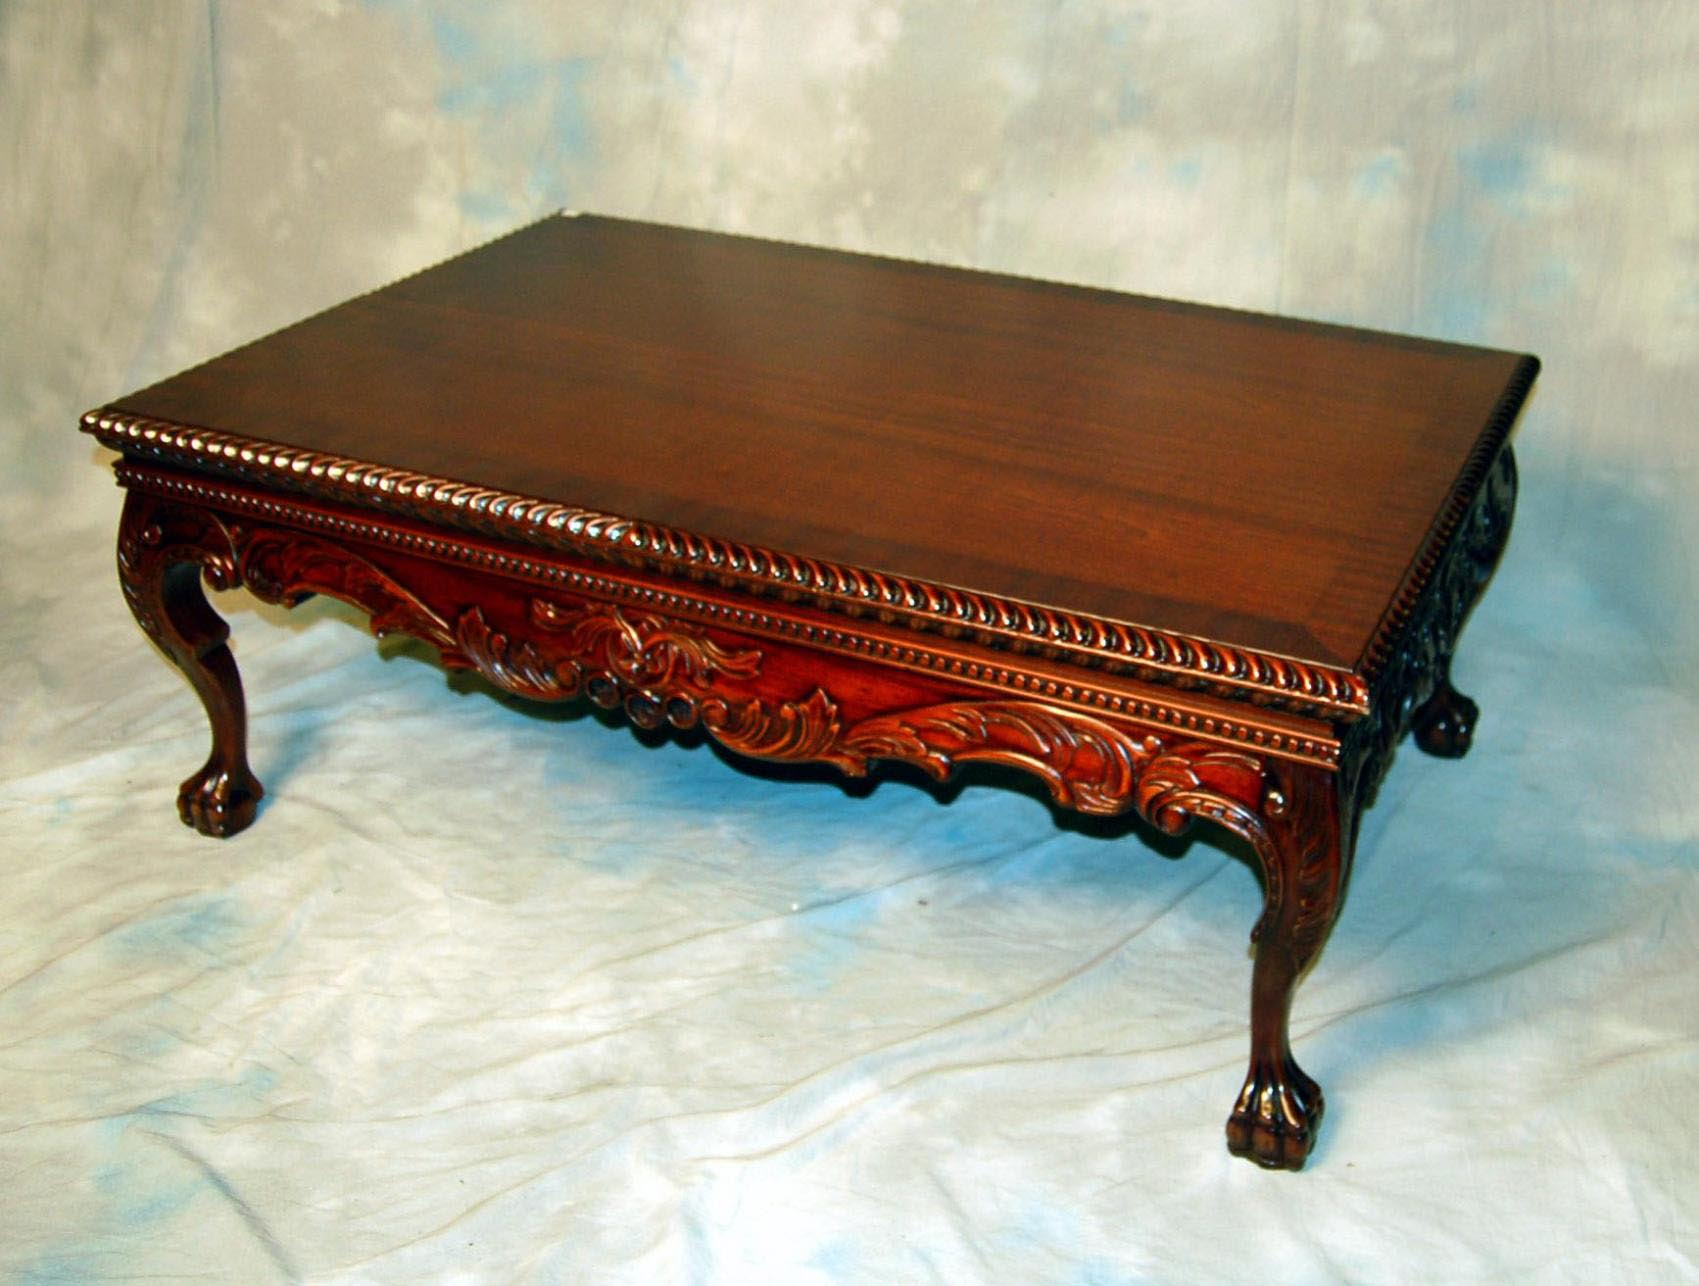 Vintage mahogany coffee table coffee table design ideas for Vintage coffee table